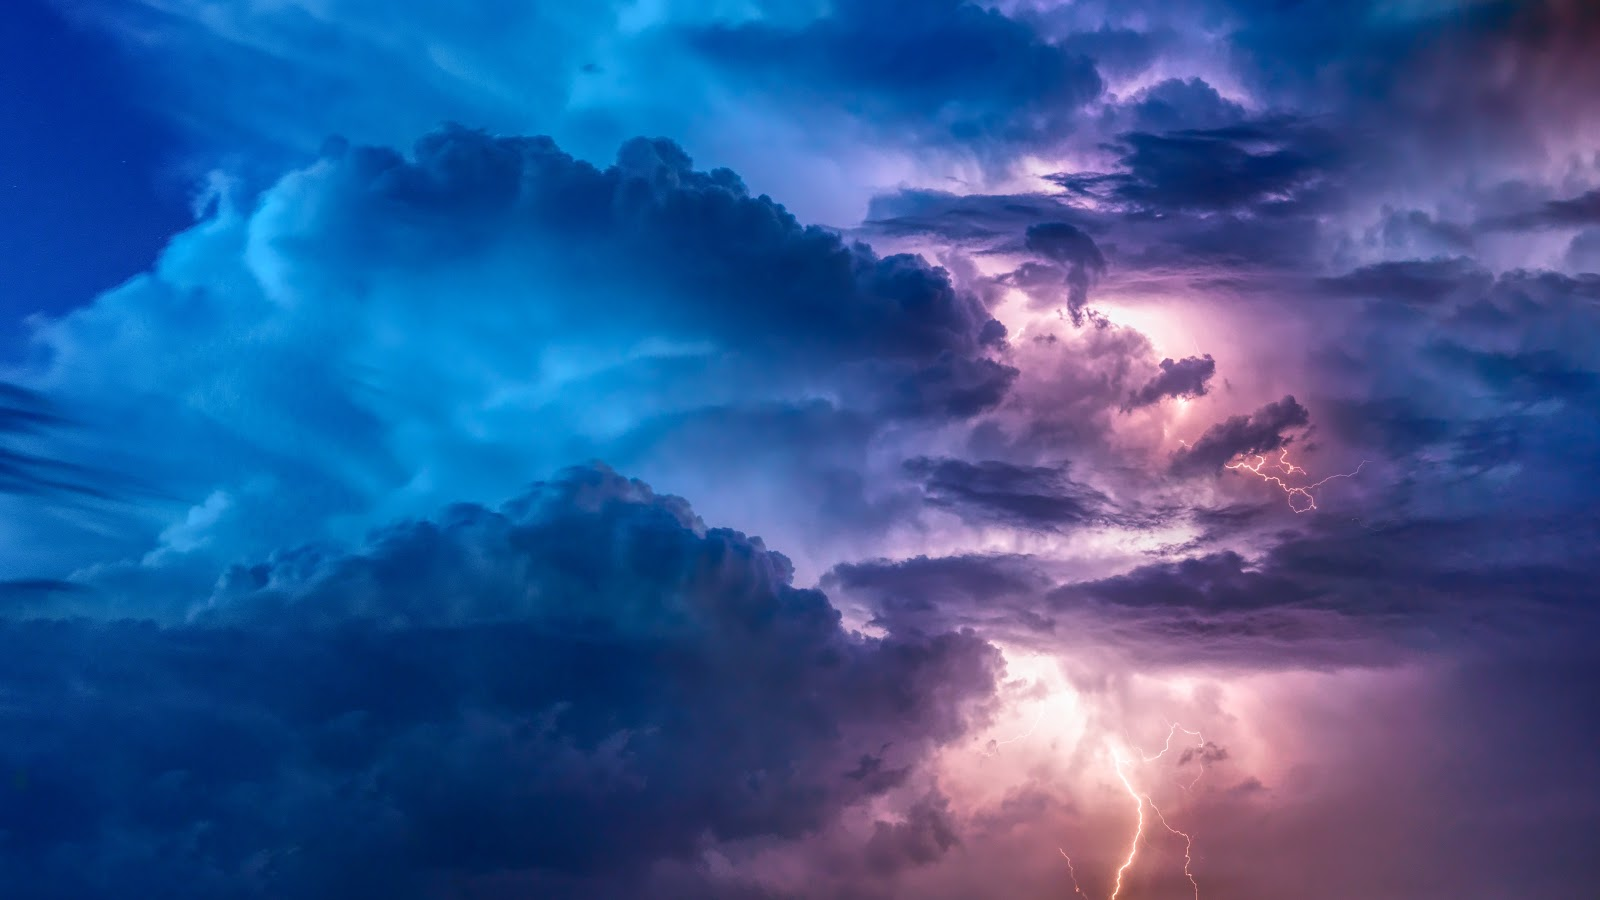 thunderstorm-scenic-view-nature-images